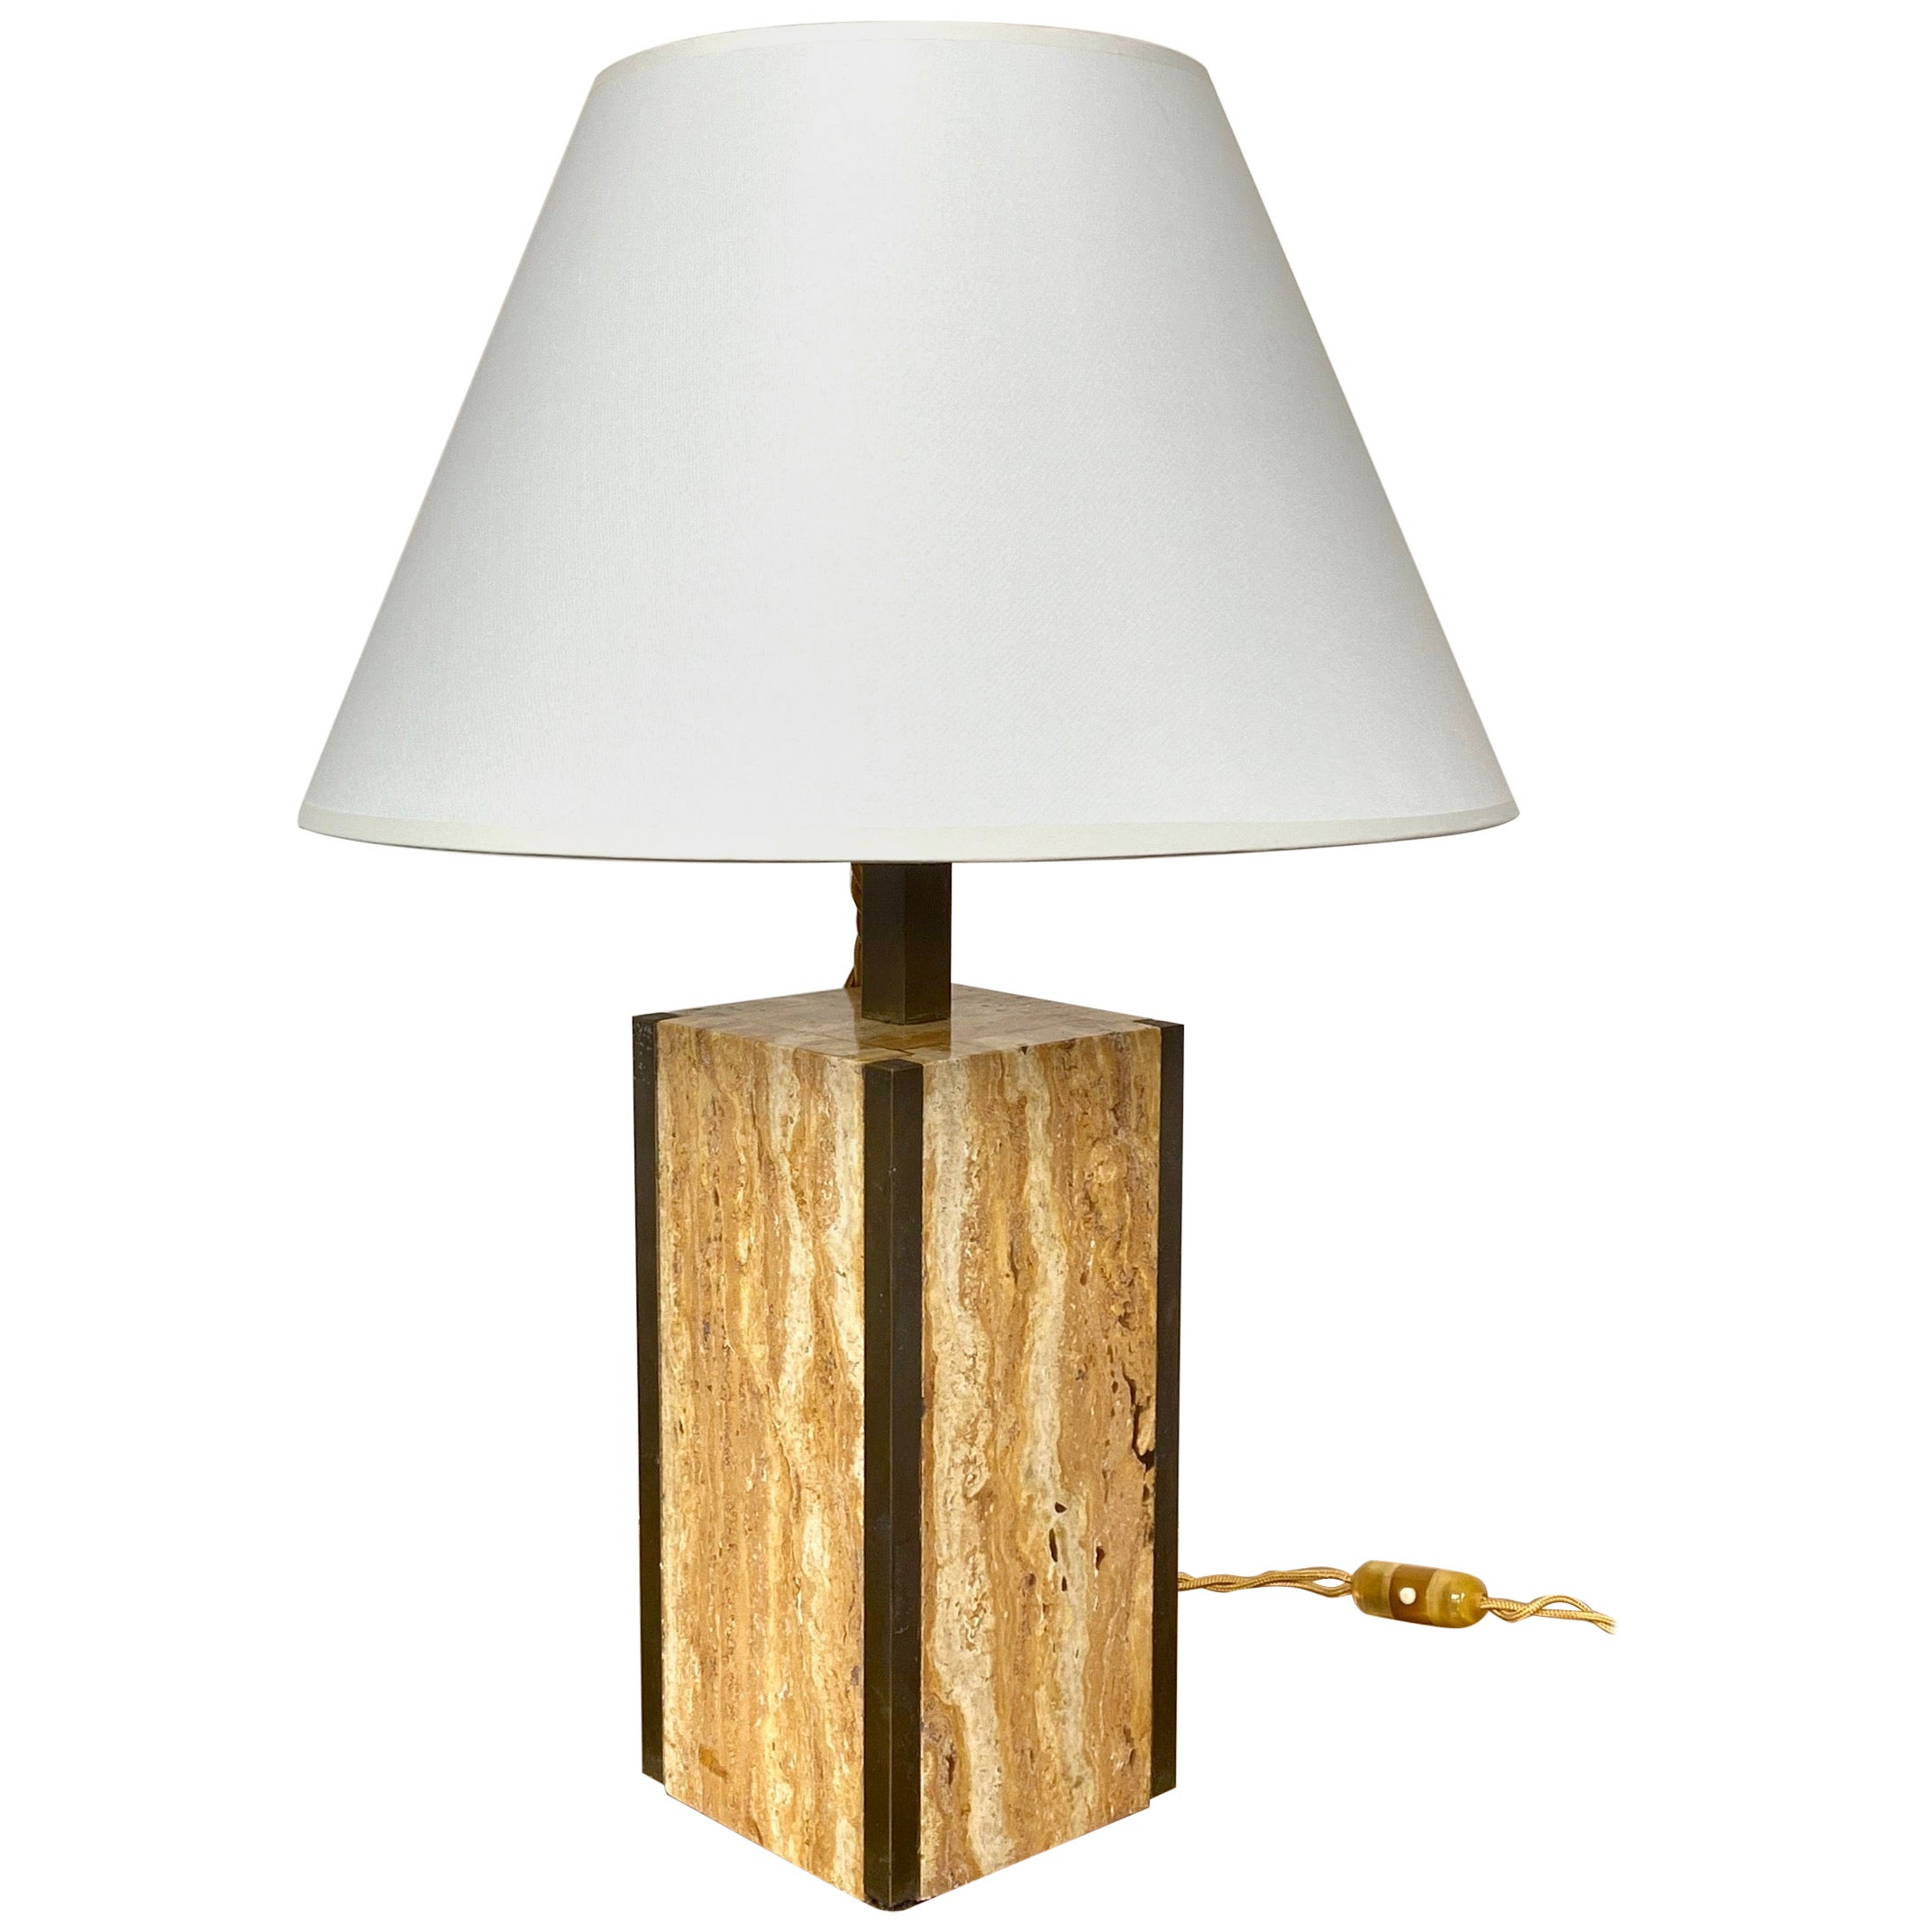 Travertine Walnut and Brass Table Lamp, Italy, 1970s